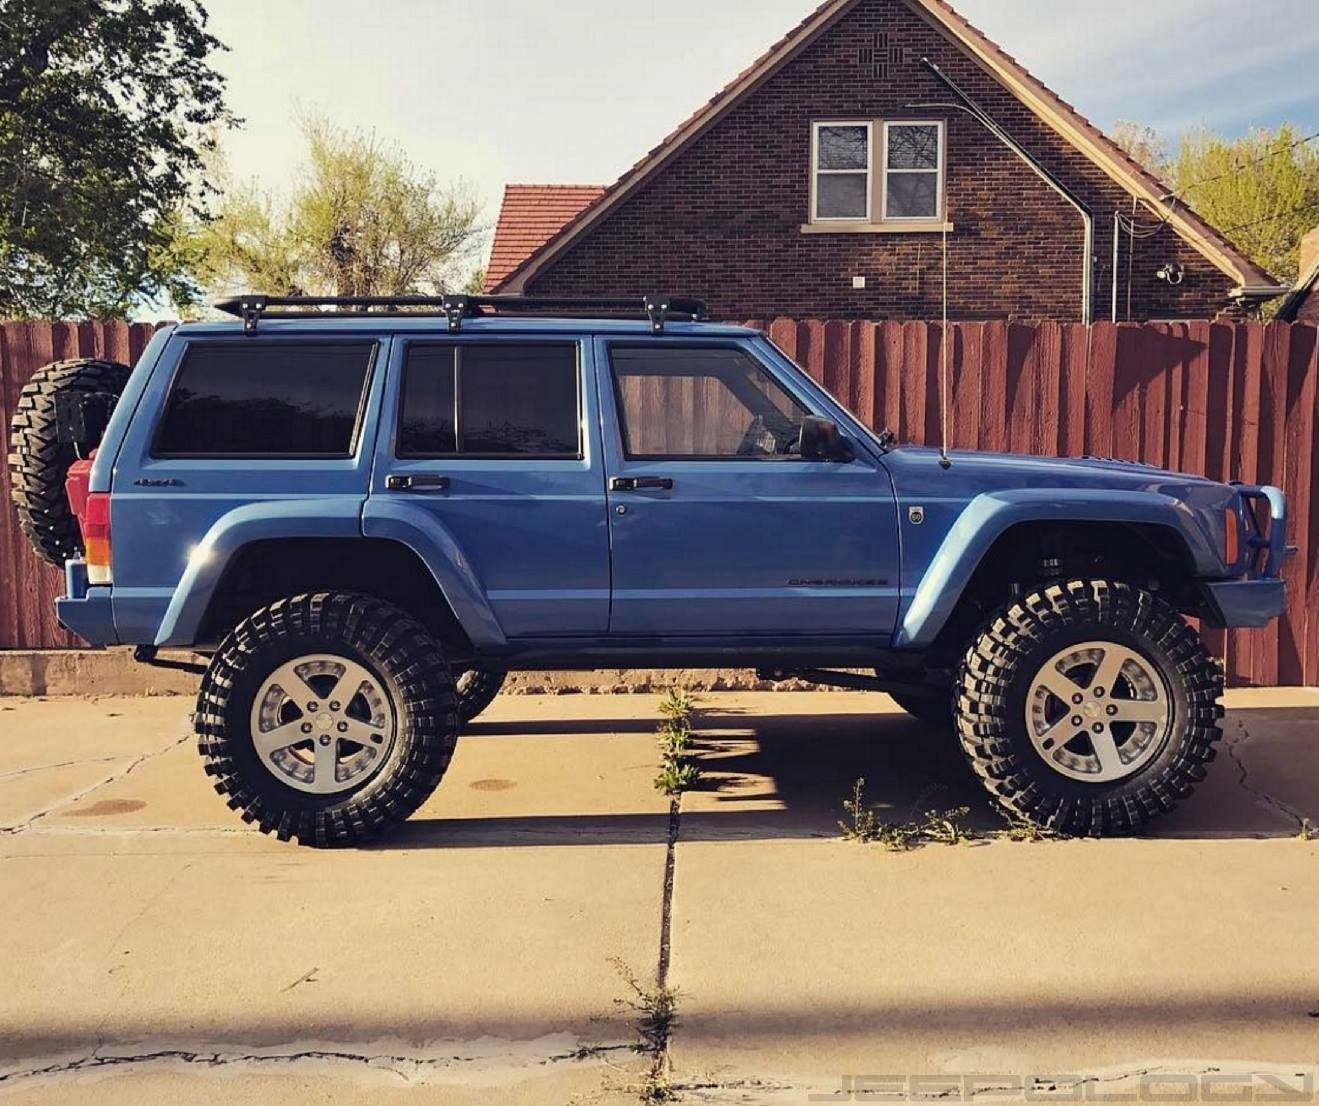 Jeep Grand Cherokee For Sale Near Me: This Is What My Charlotte Would Look Like...if I Had The